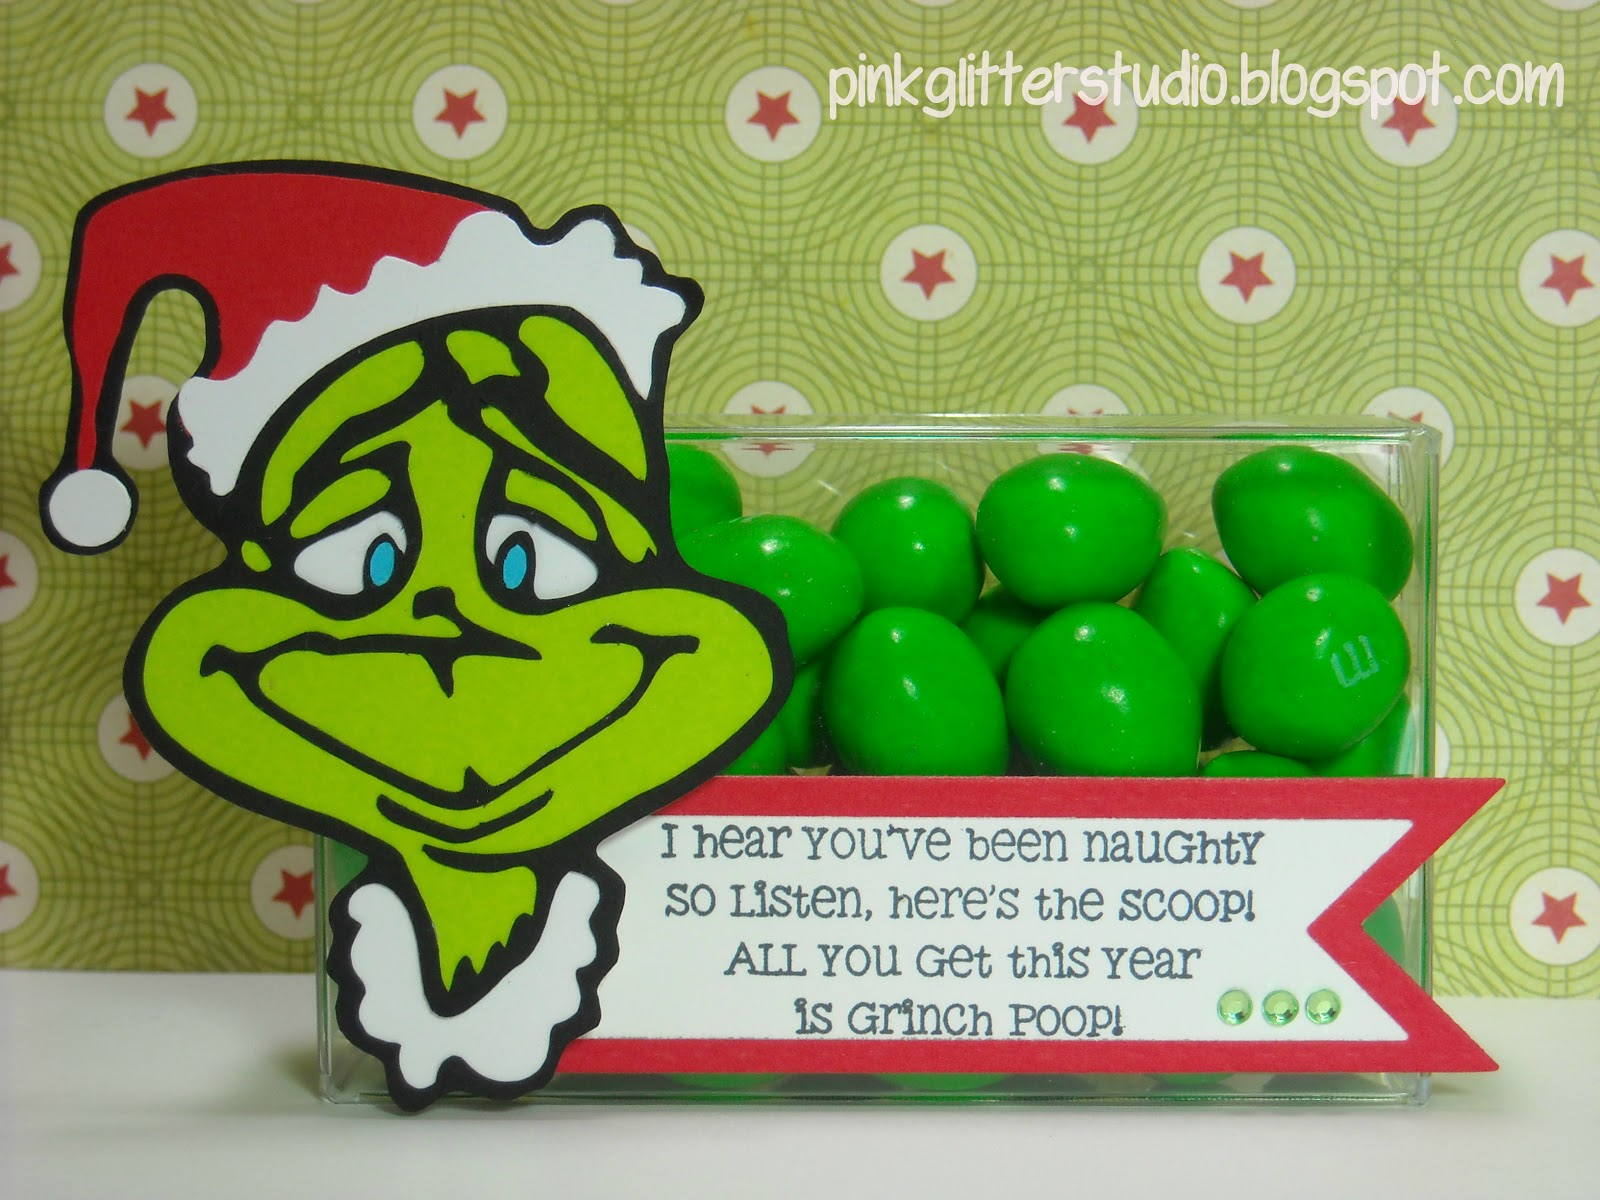 Grinch Face Svg | Search Results | Calendar 2015